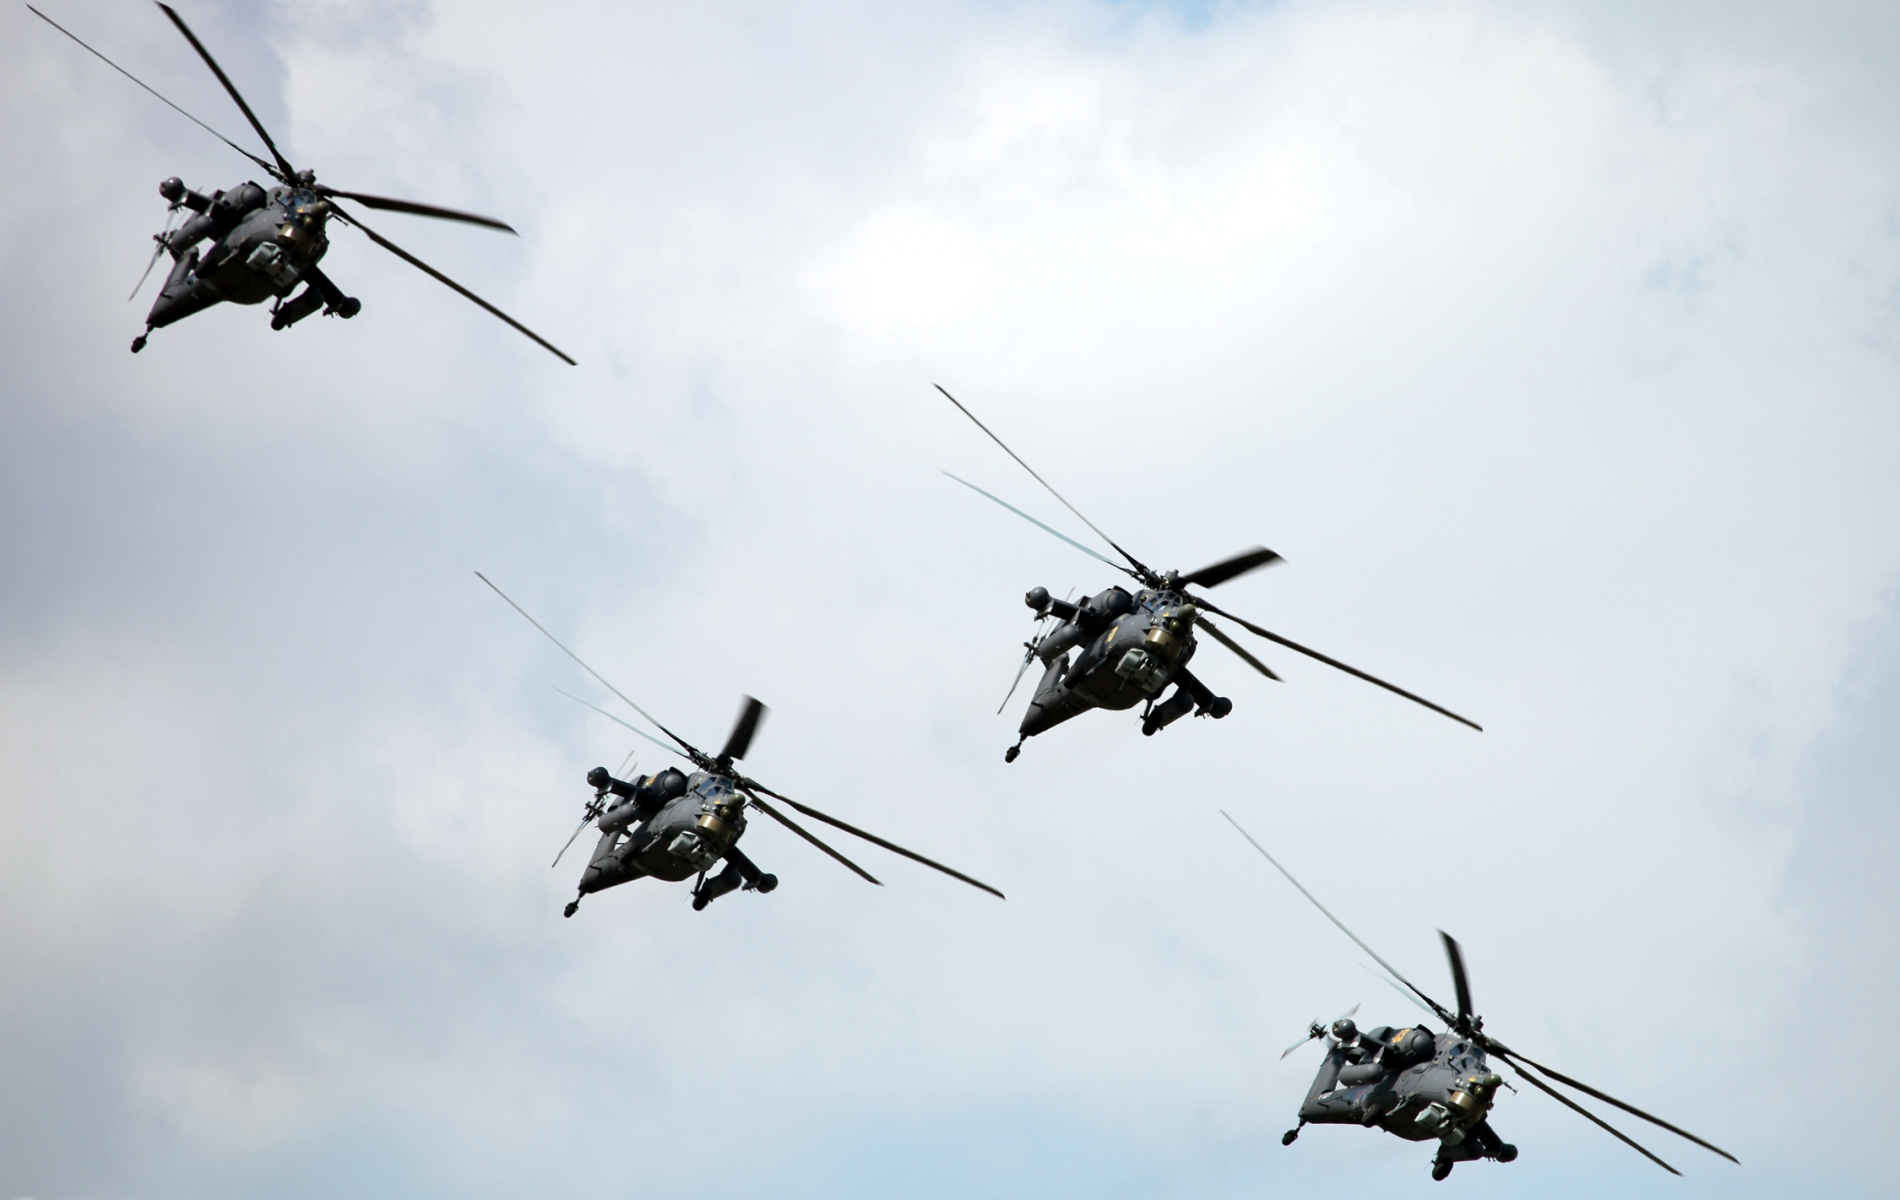 Russian Military Photos and Videos #2 Russian_air_force_mi_28n_helicopters-other